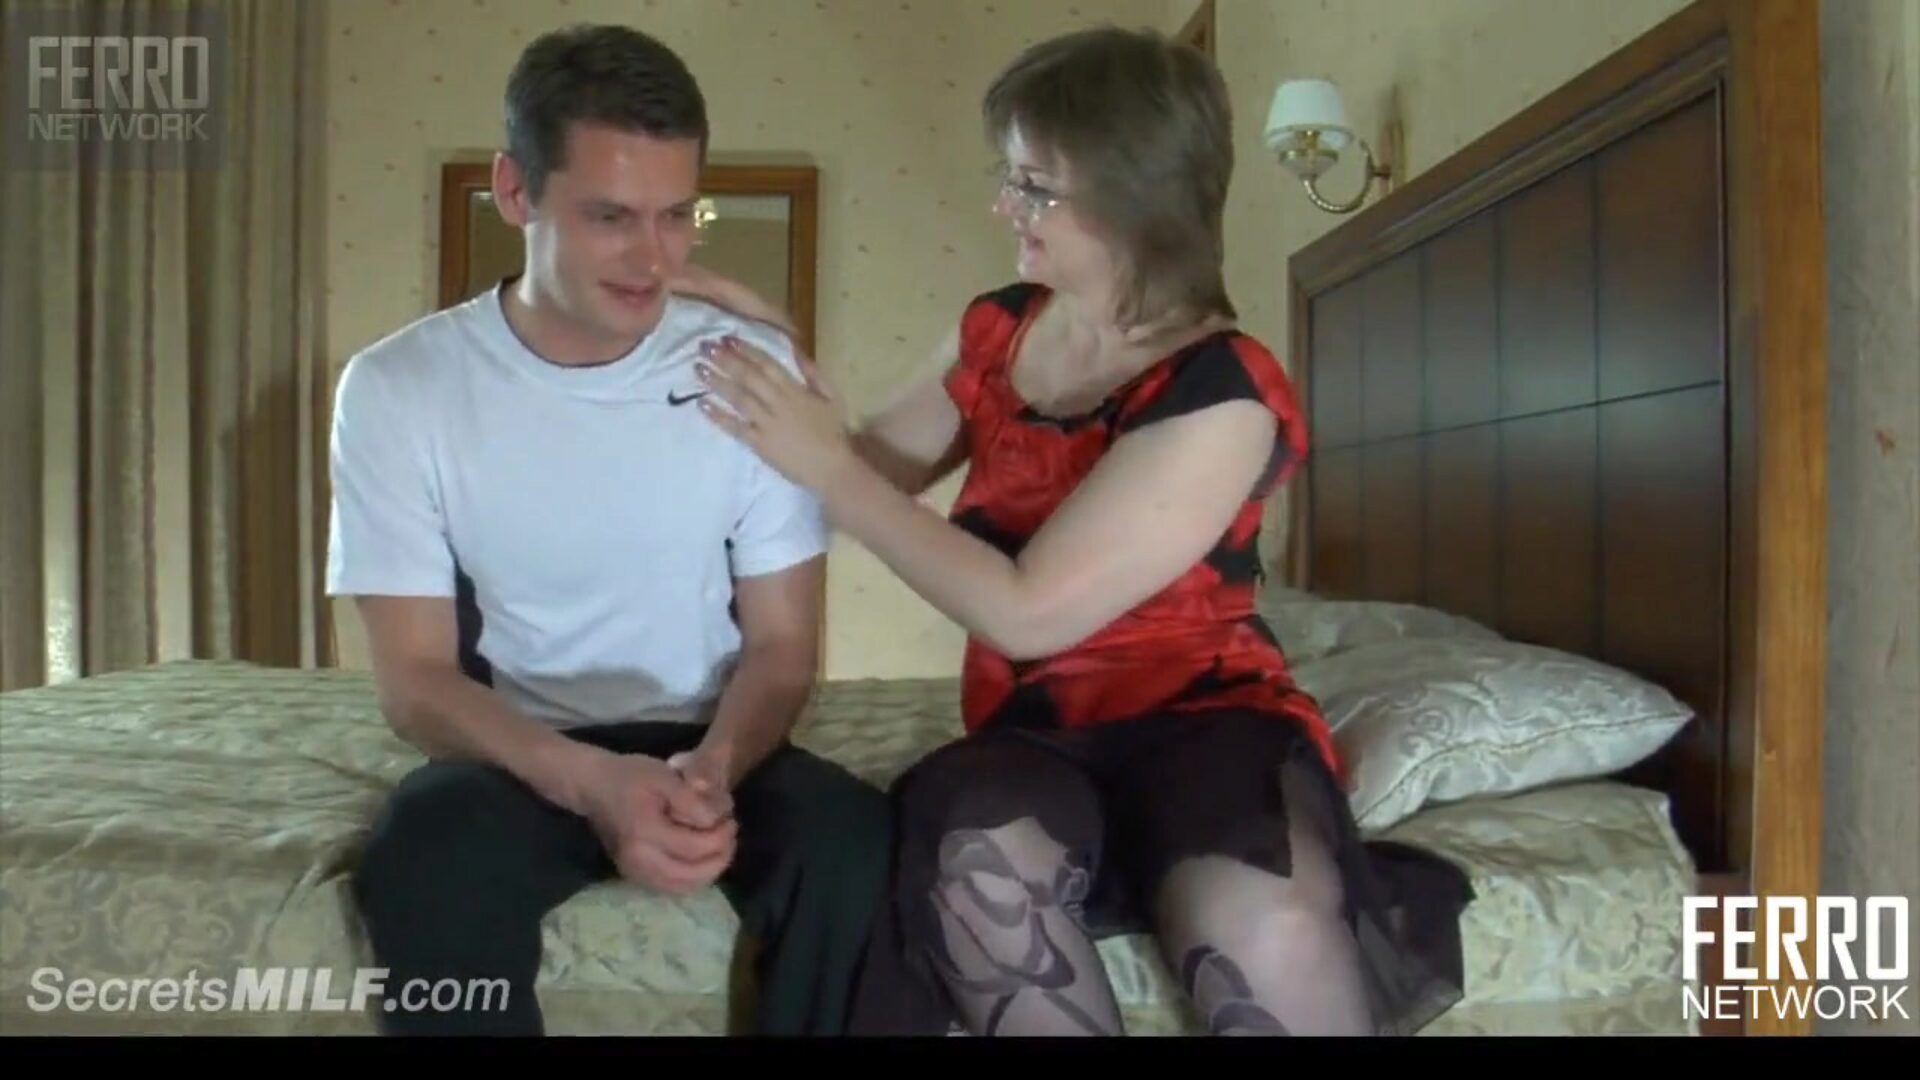 Mom in glasses lust for a hard plow with teen son-in-law